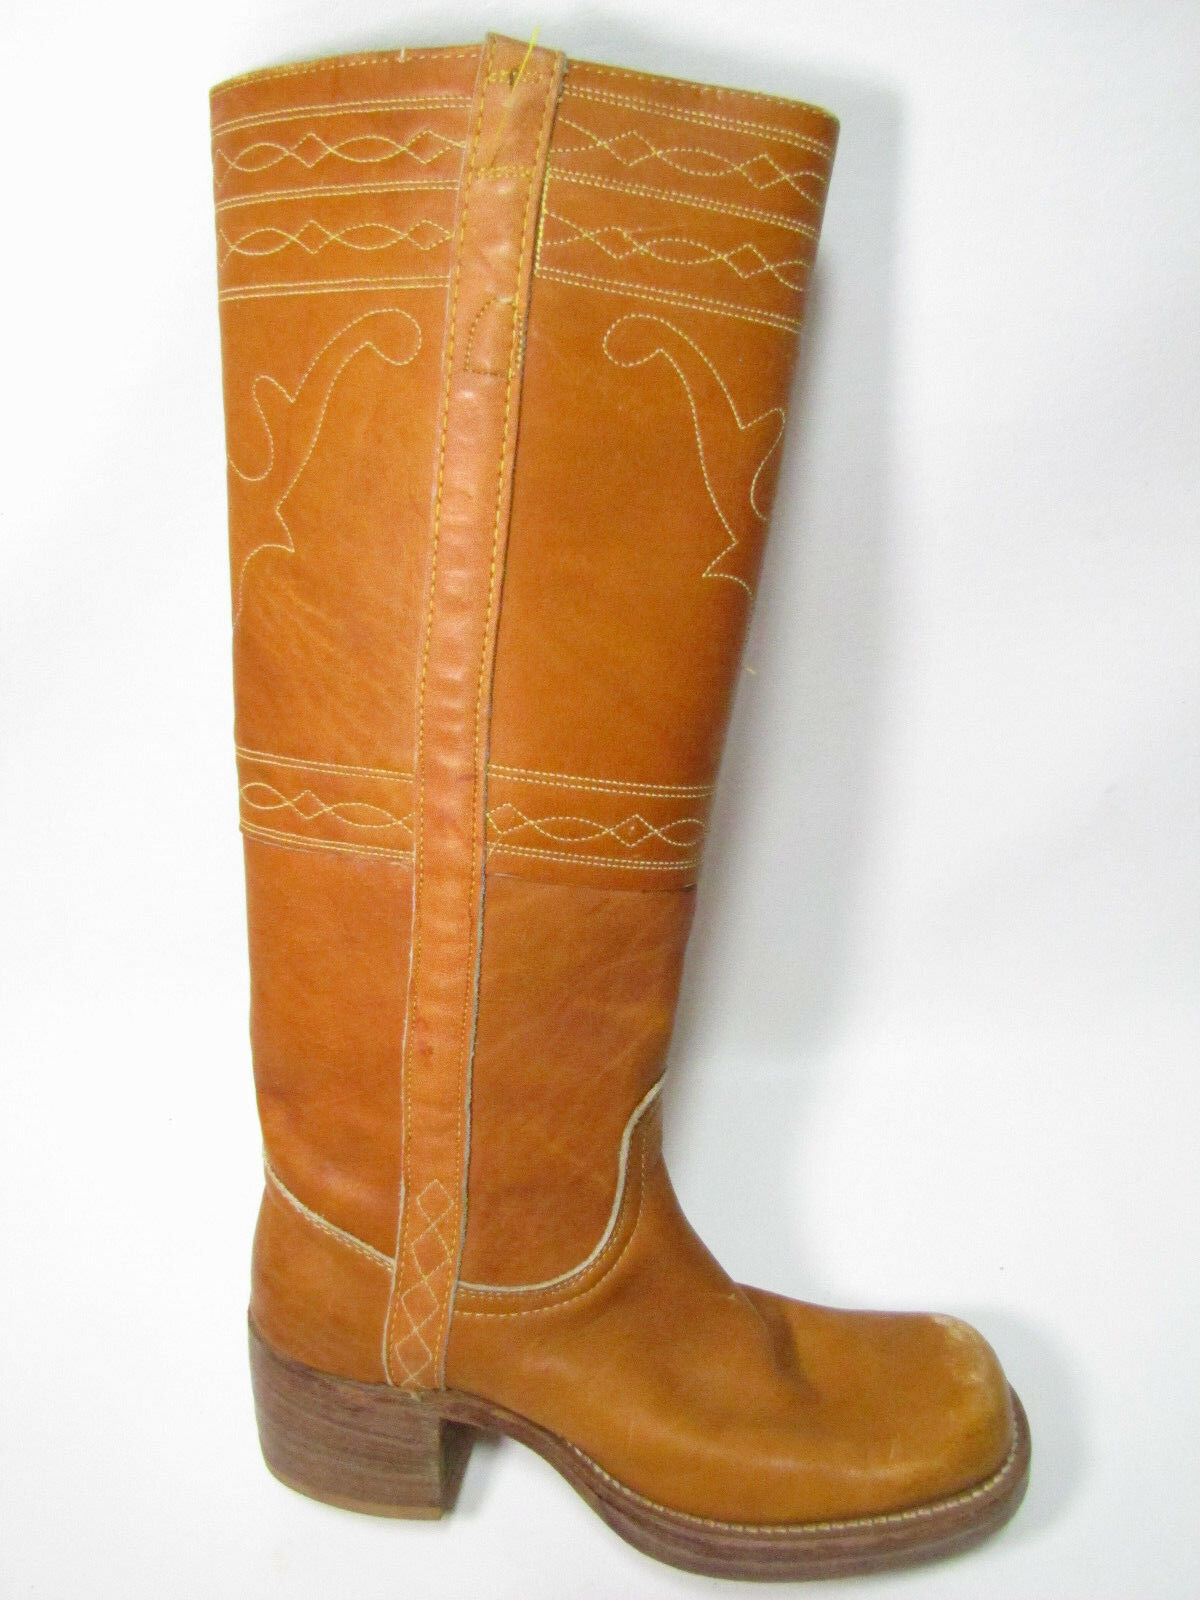 VTG 70s Frye Campus Tall Boots Stitched Brown Leather Hipster 8171 Sz 5 B